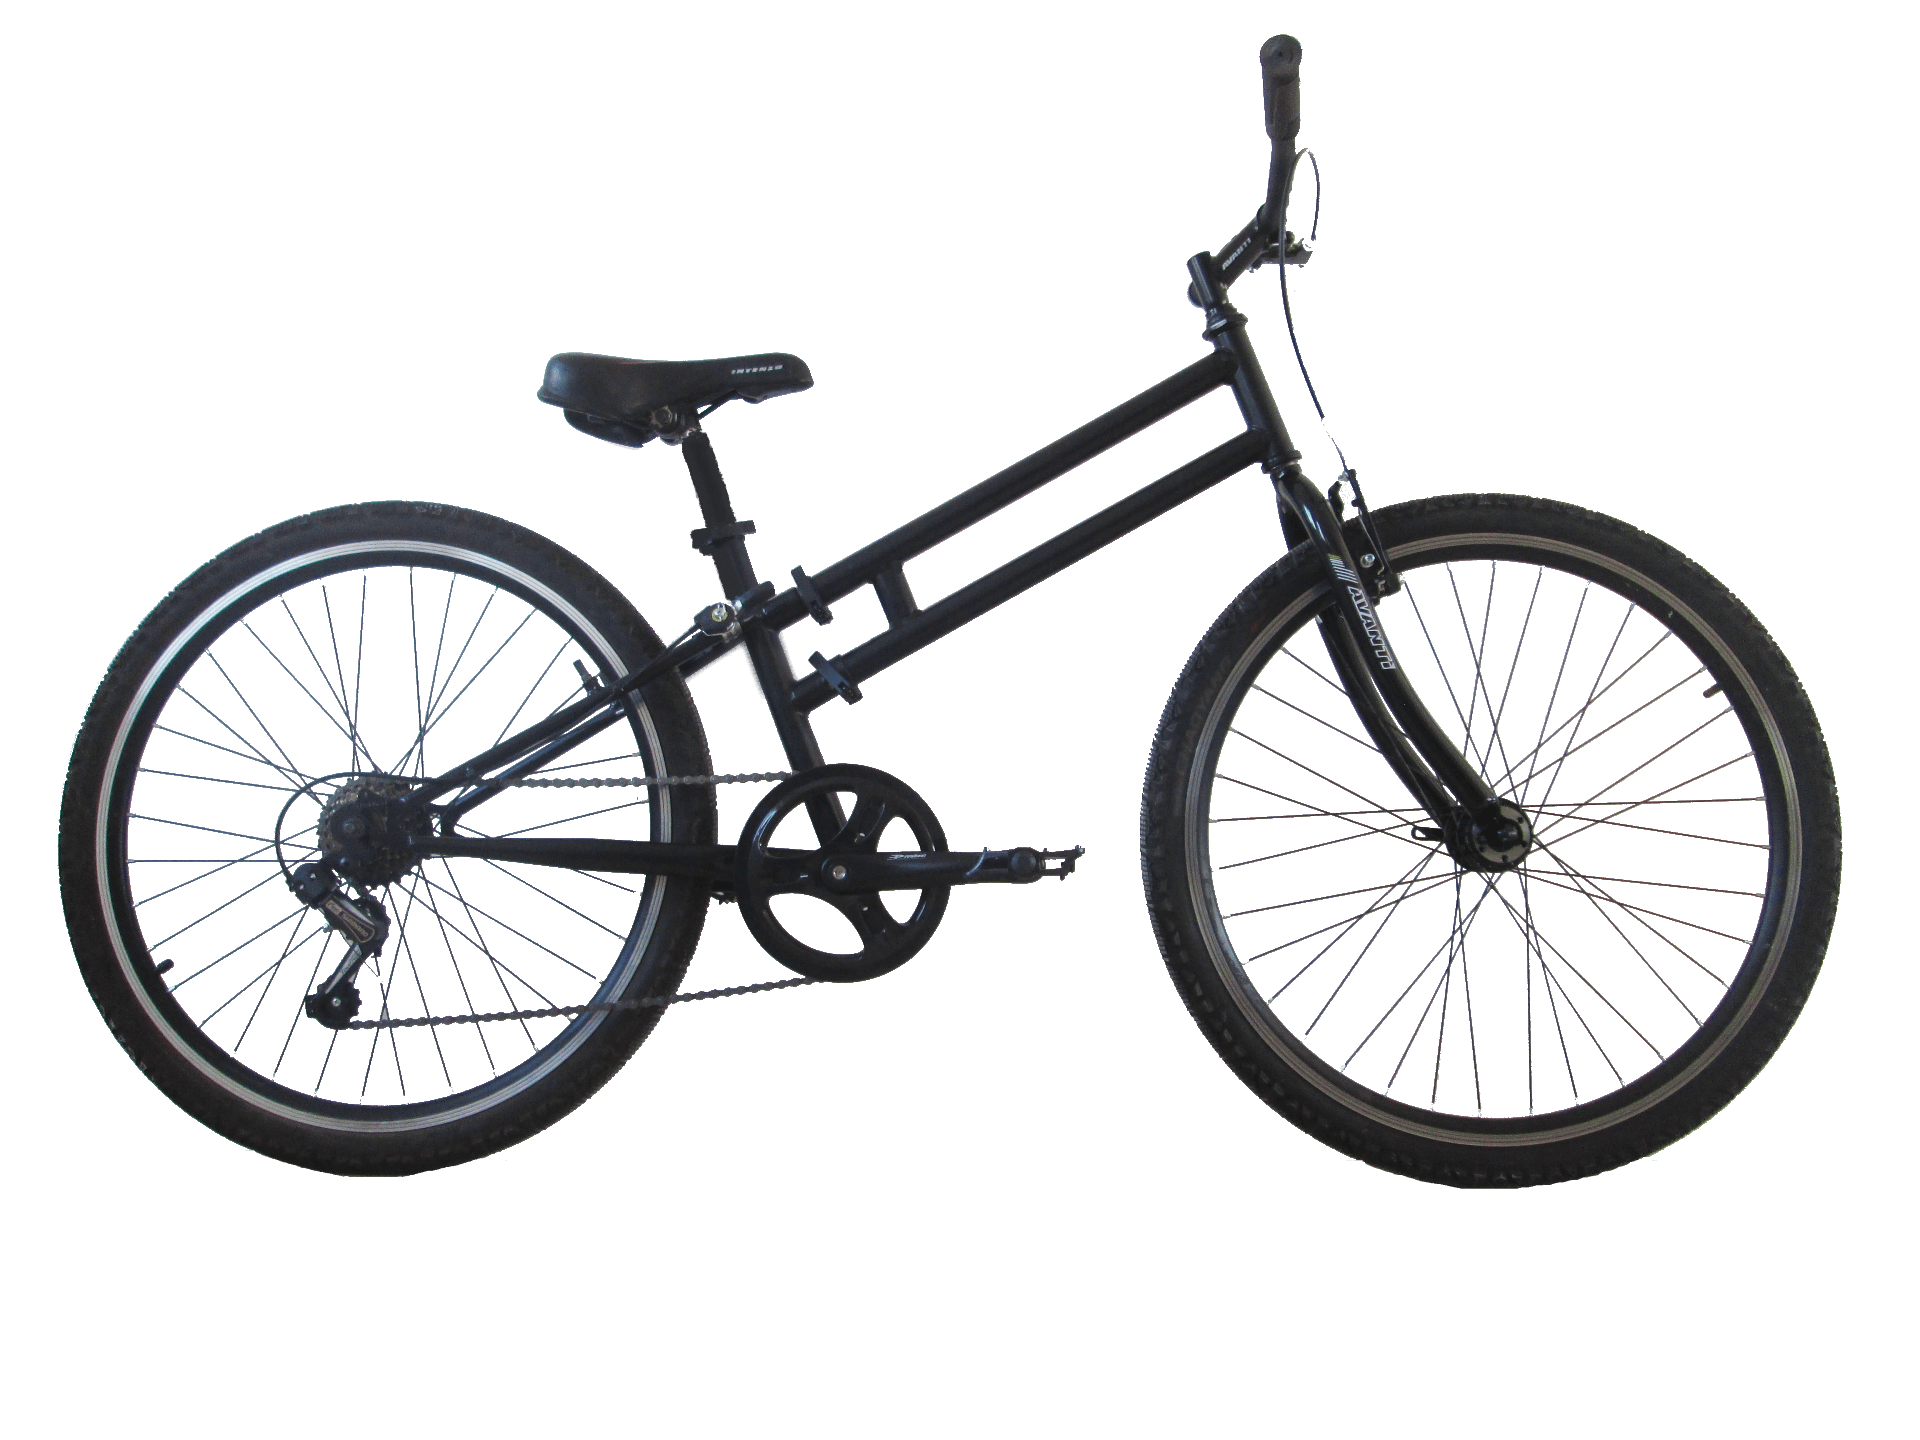 Cutbike bicycle